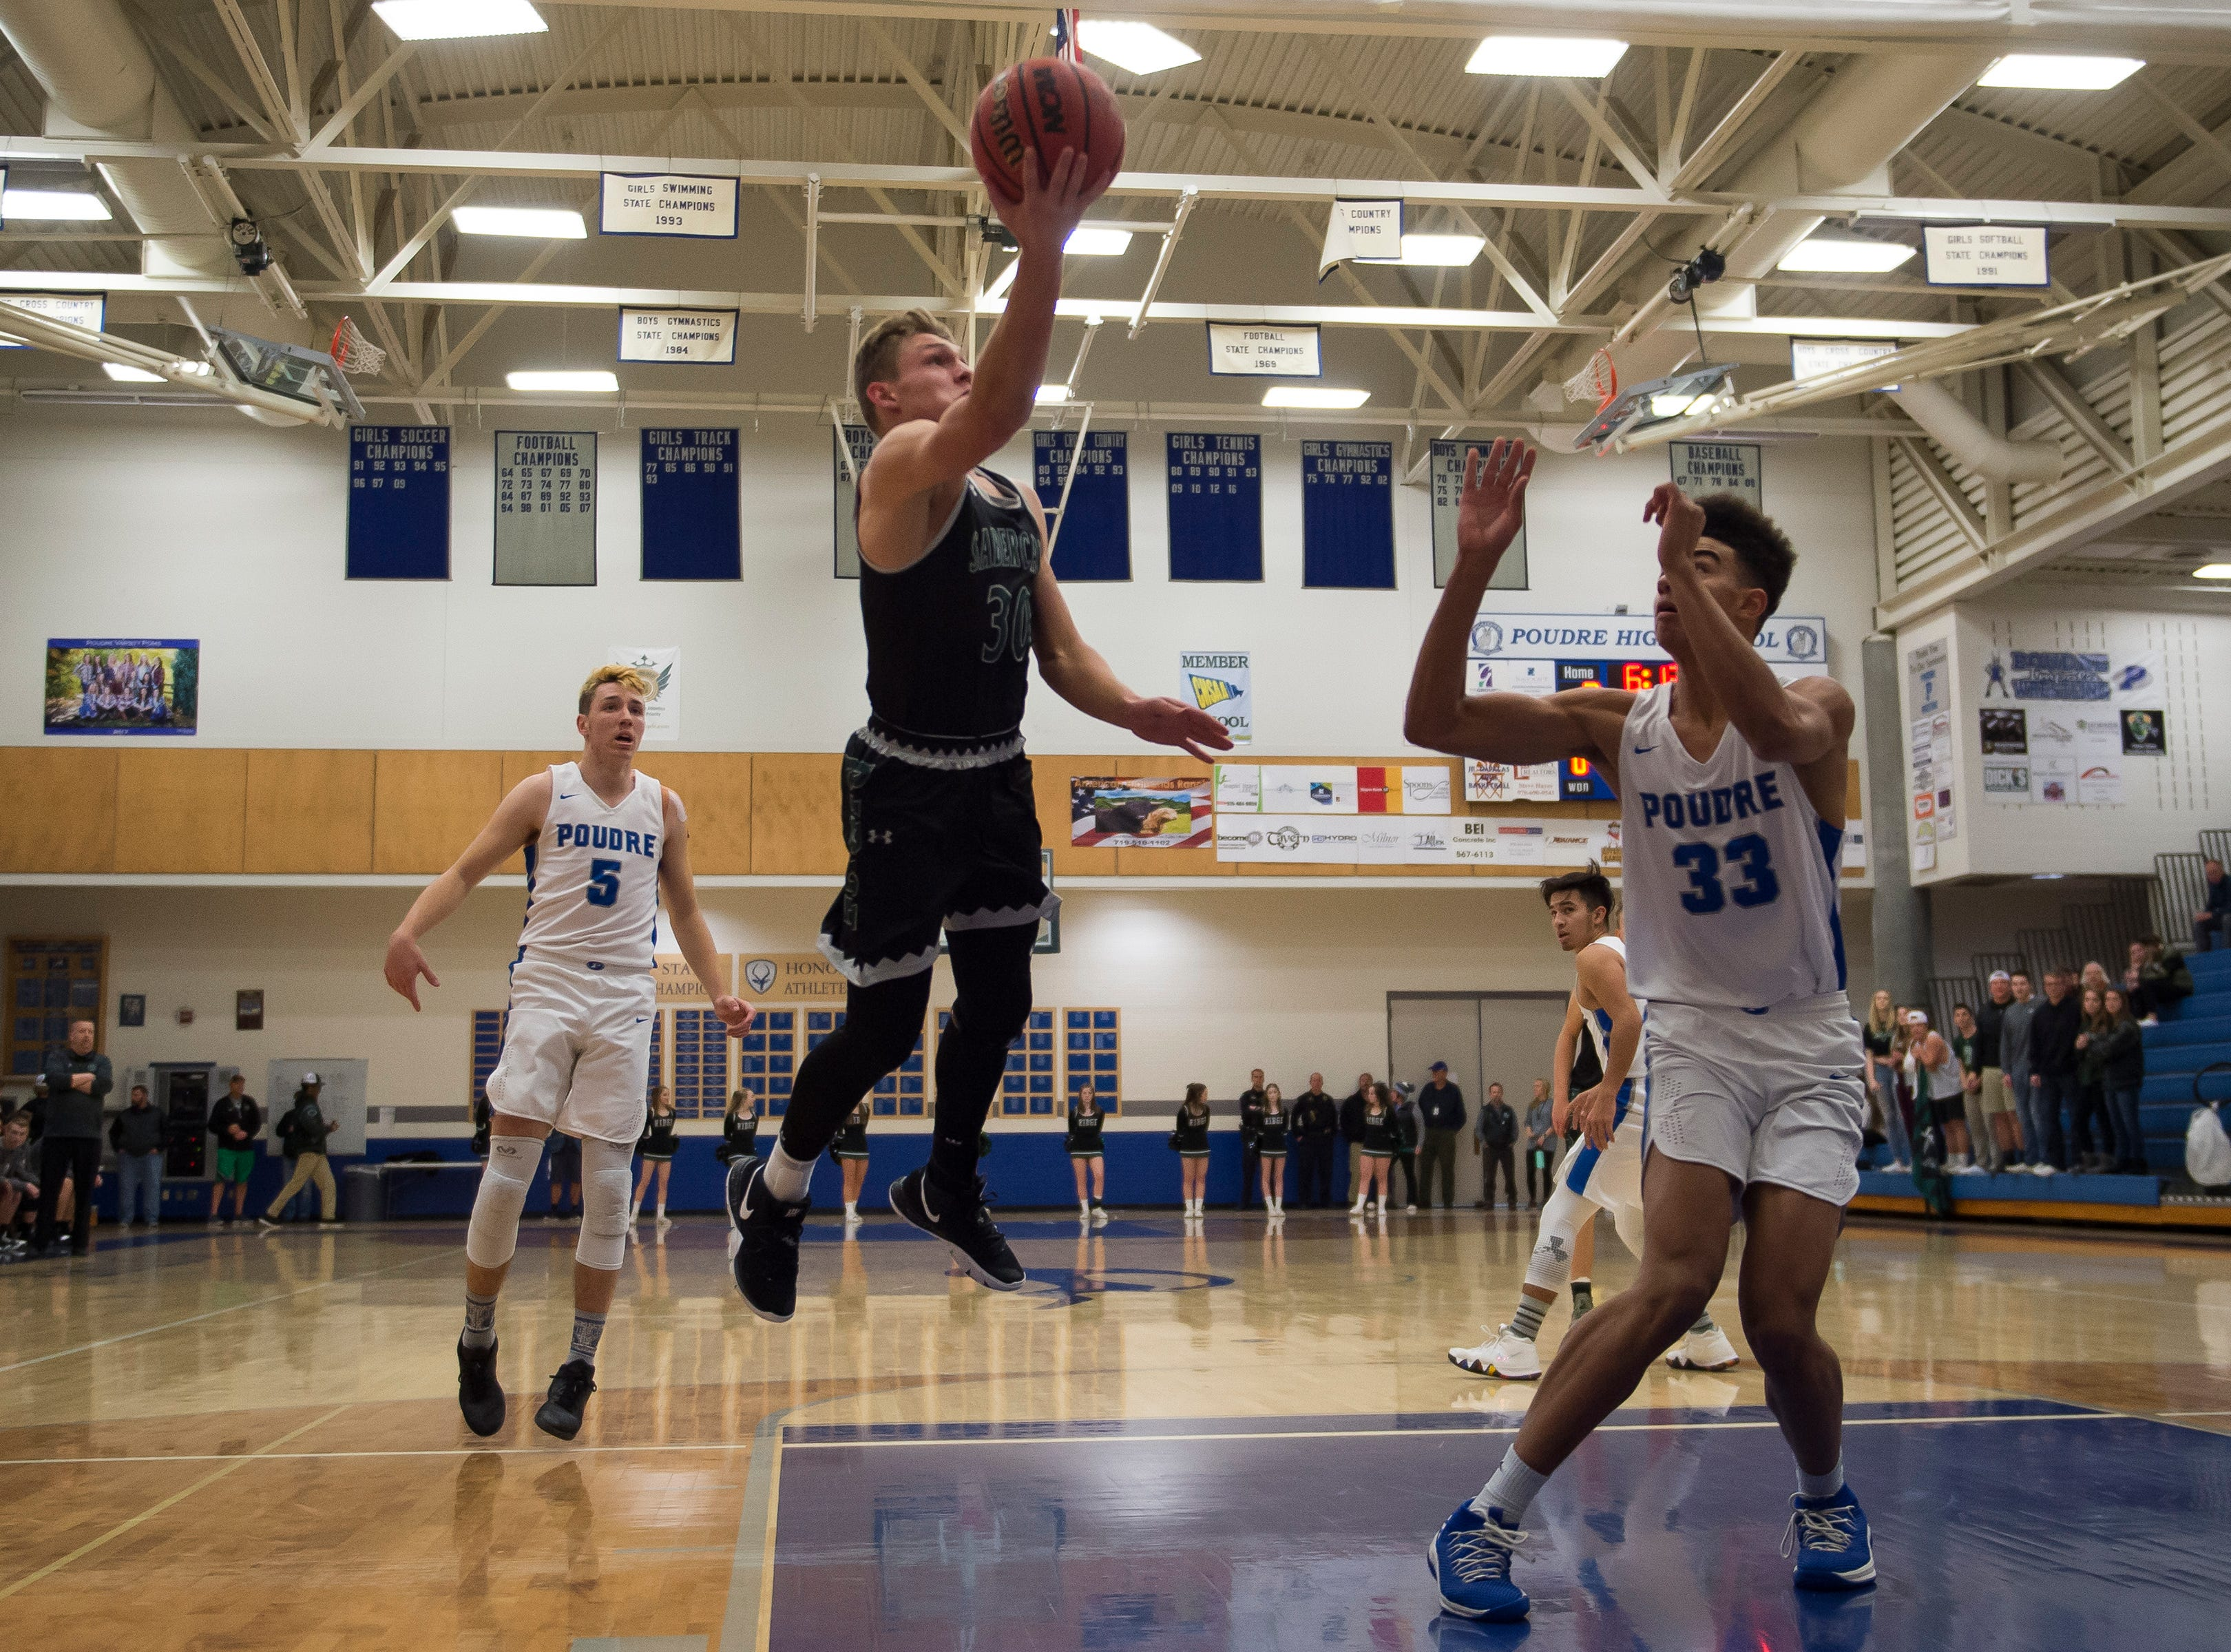 Fossil Ridge High School senior Zack Crane attempts a layup during a game against Poudre High School on Tuesday, Dec. 4, 2018, at Poudre High School on Fort Collins, Colo.